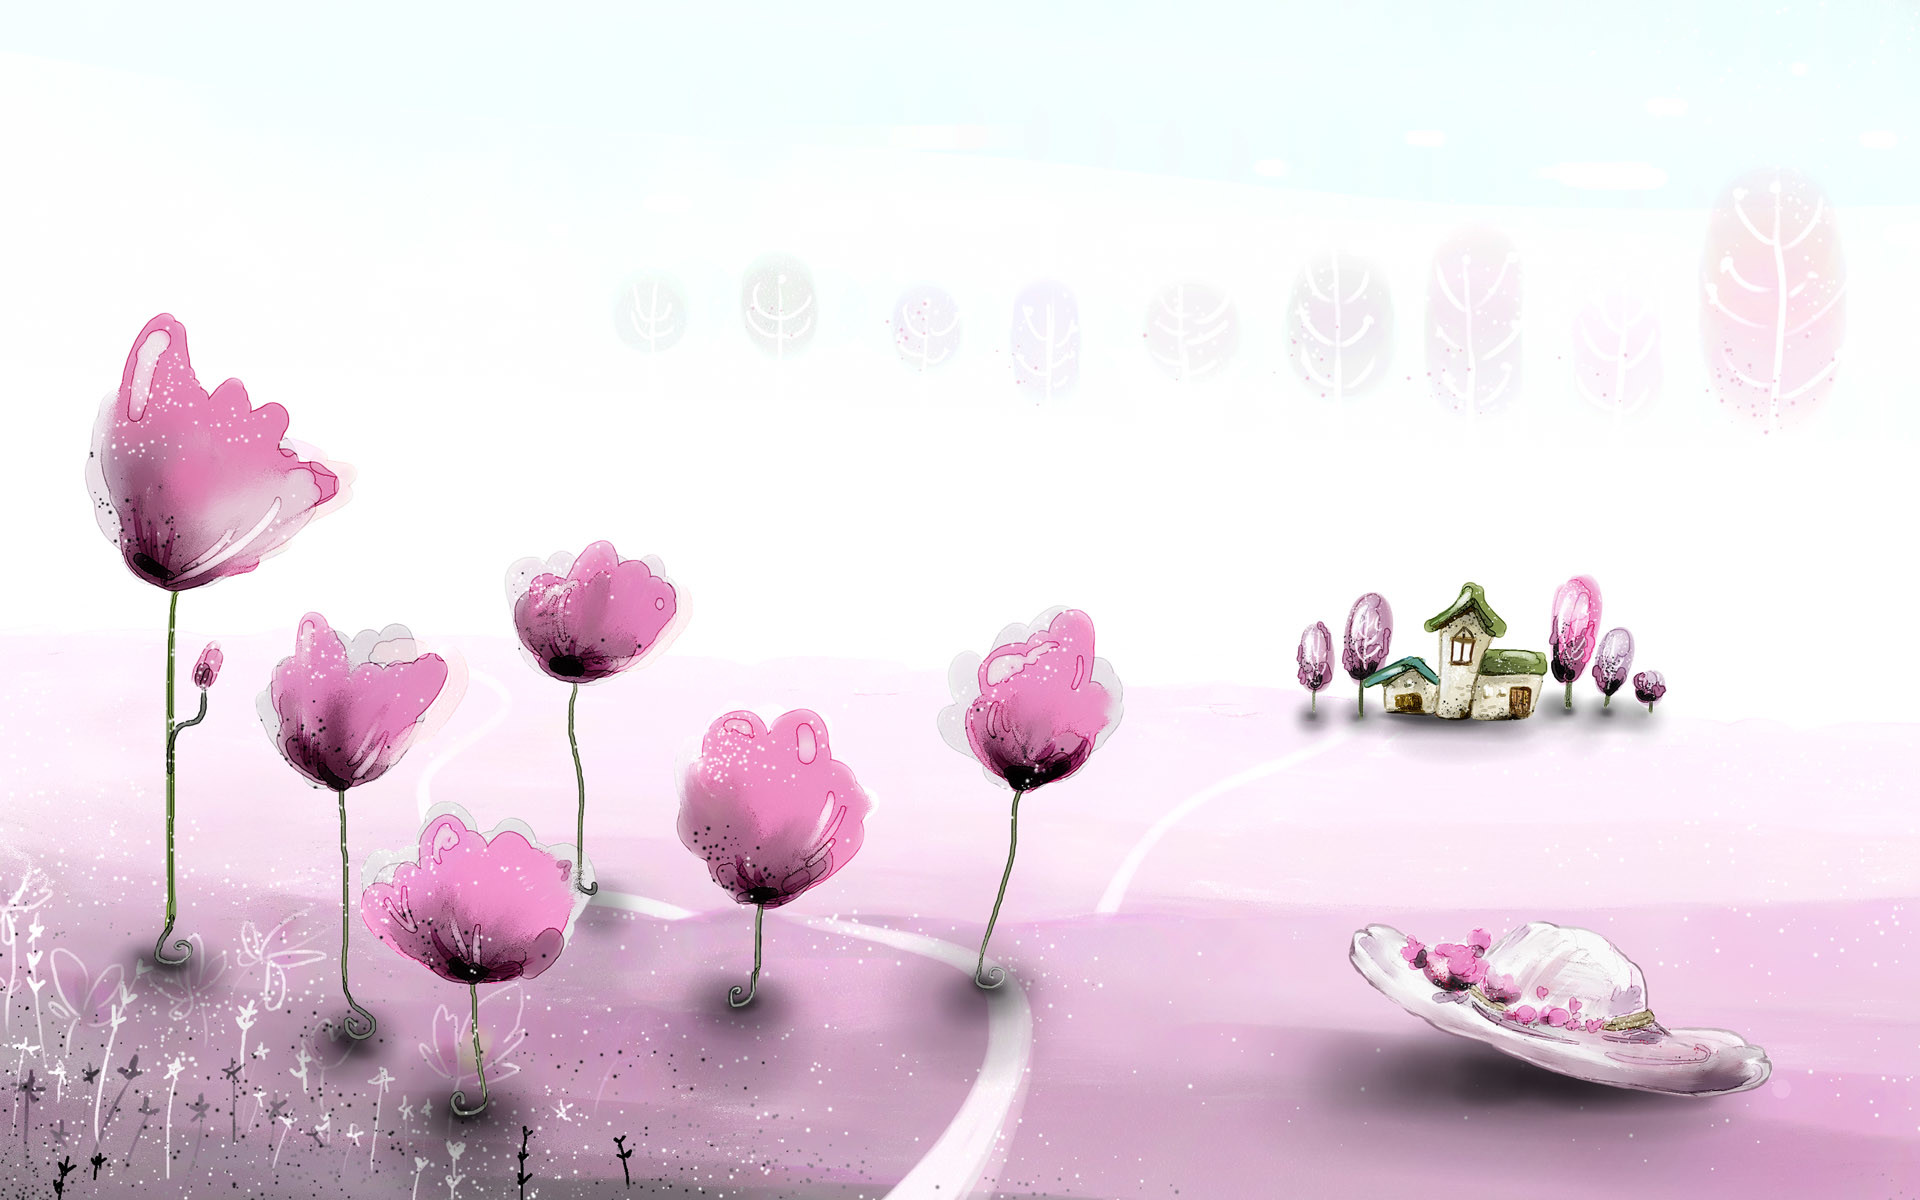 Simple Cute Desktop Wallpapers 58 Images